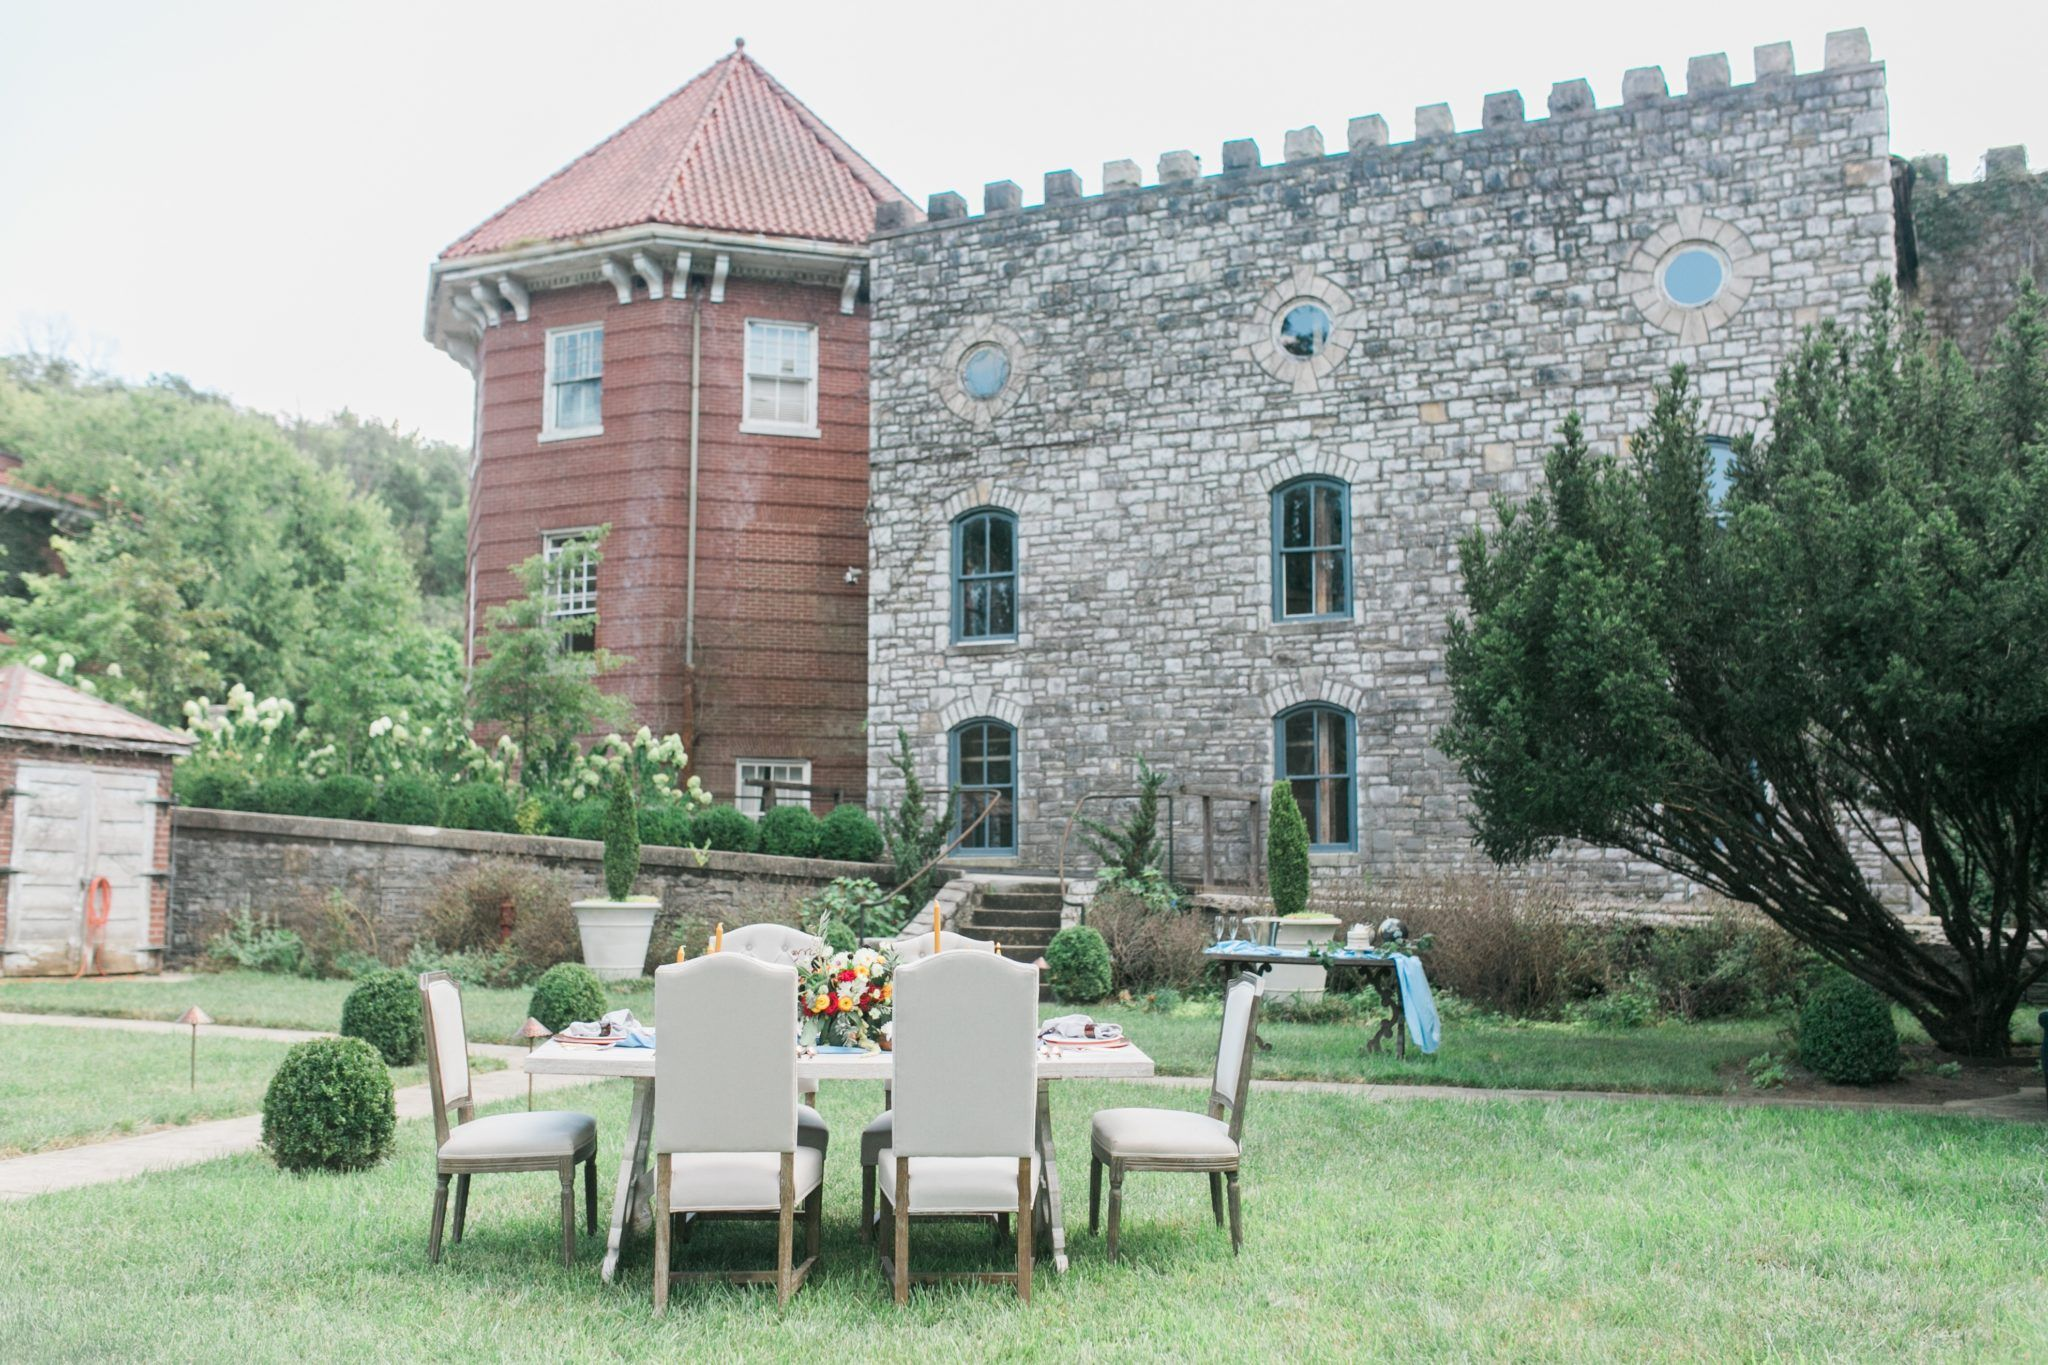 15 Unique Venues For A One Of A Kind Event Kentucky Wedding Venues Wedding Venues Unique Wedding Venues